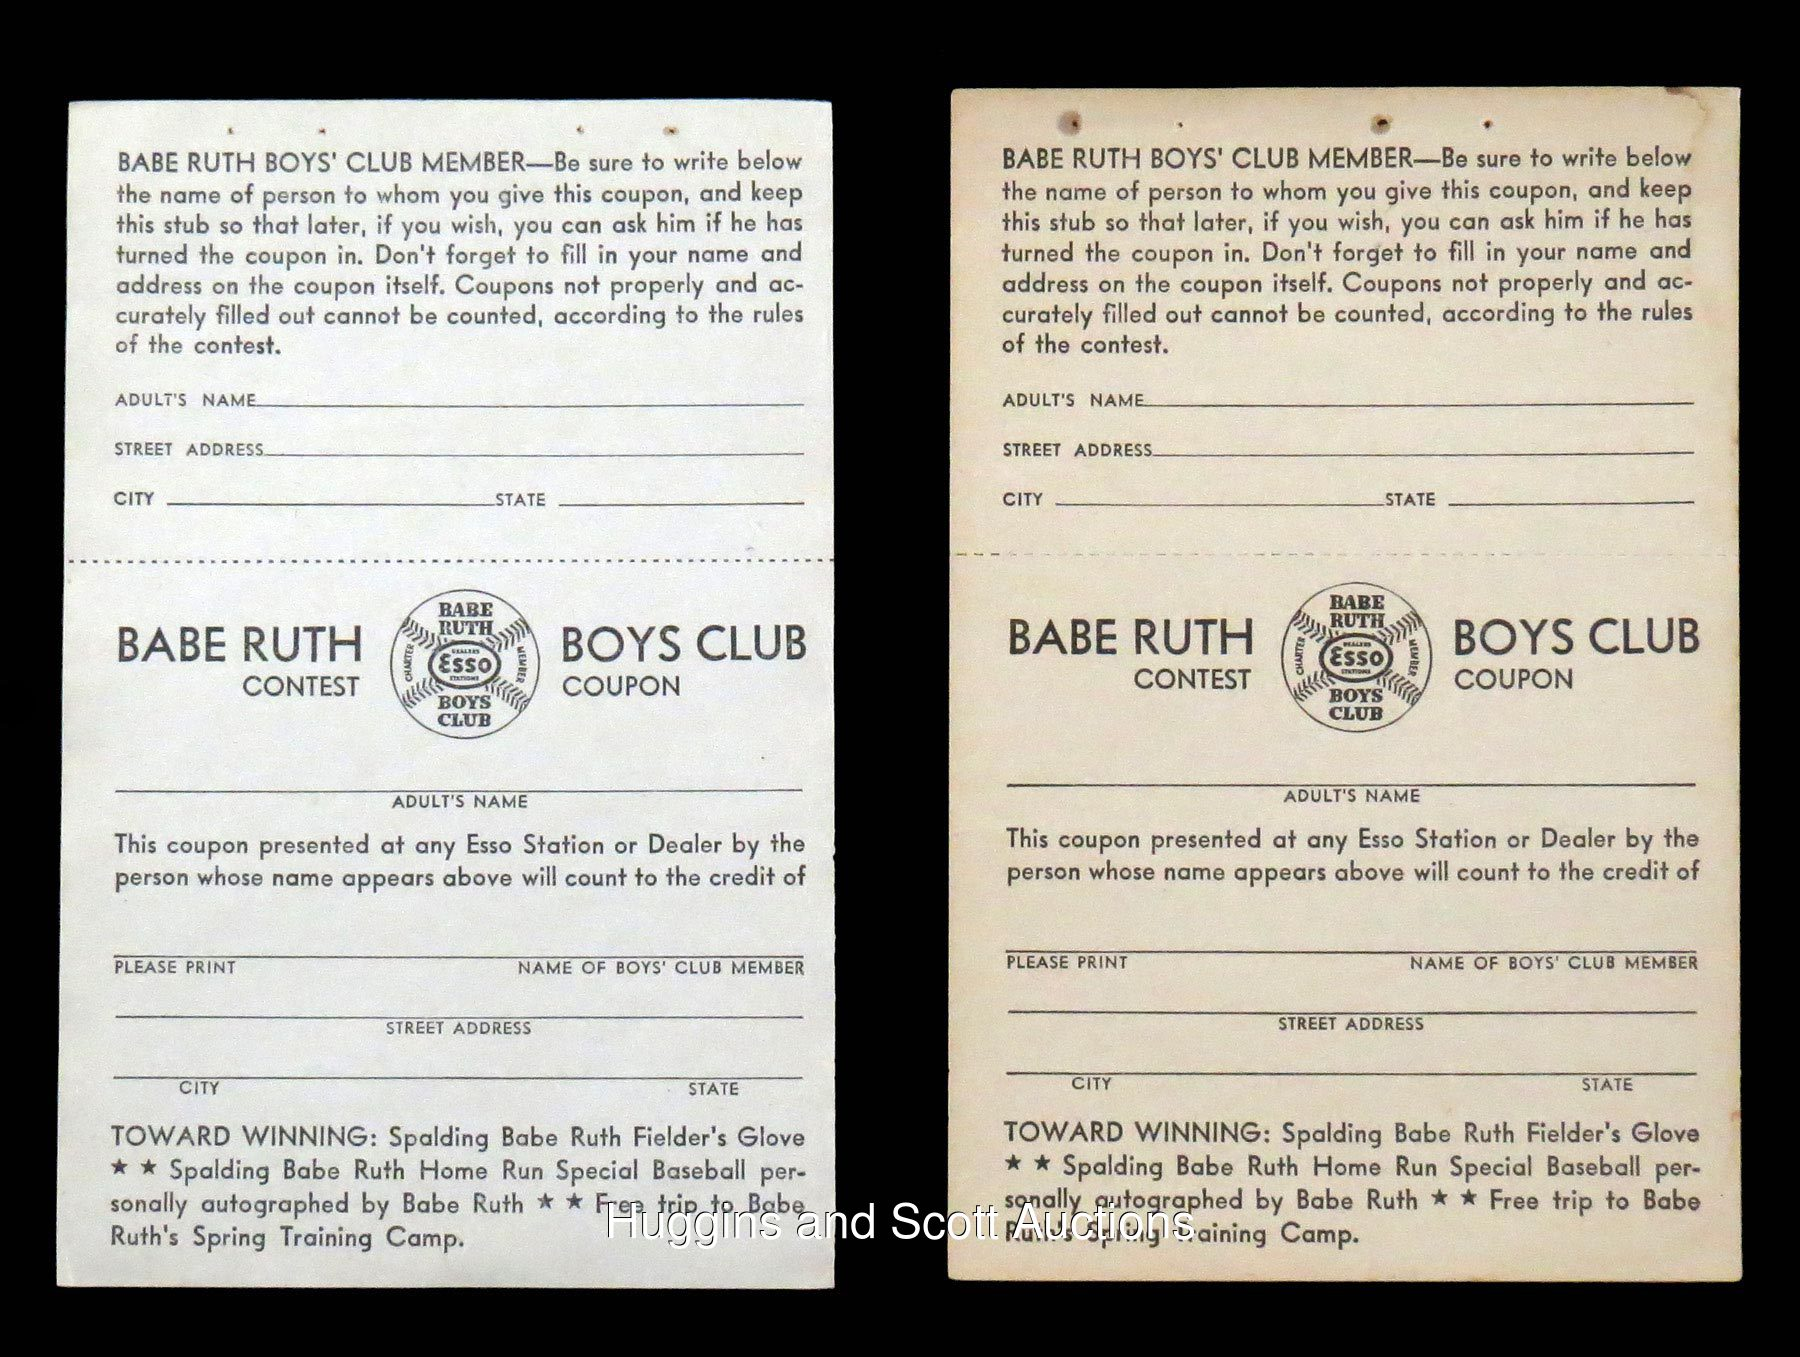 babe ruth 1937 sinclair babe ruth baseball contest ball pictures click on photo to enlarge